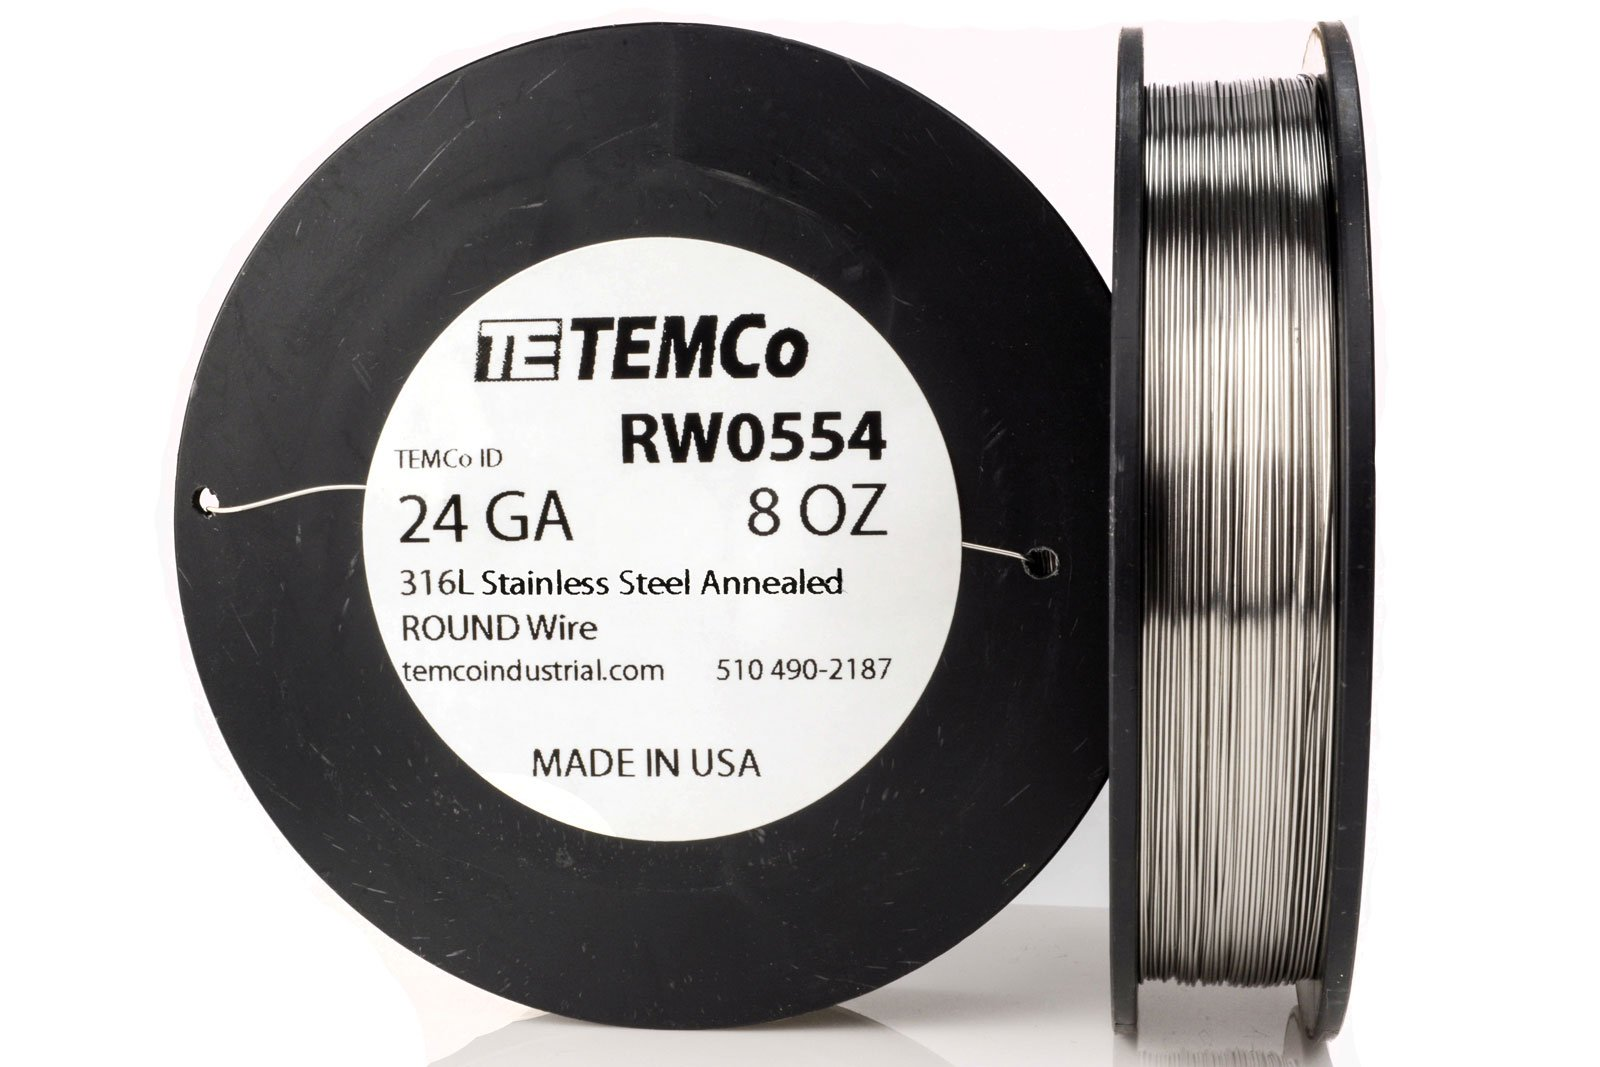 TEMCo Stainless Steel Wire SS 316L - 24 Gauge 8 oz (459 ft) Non-Resistance AWG ga